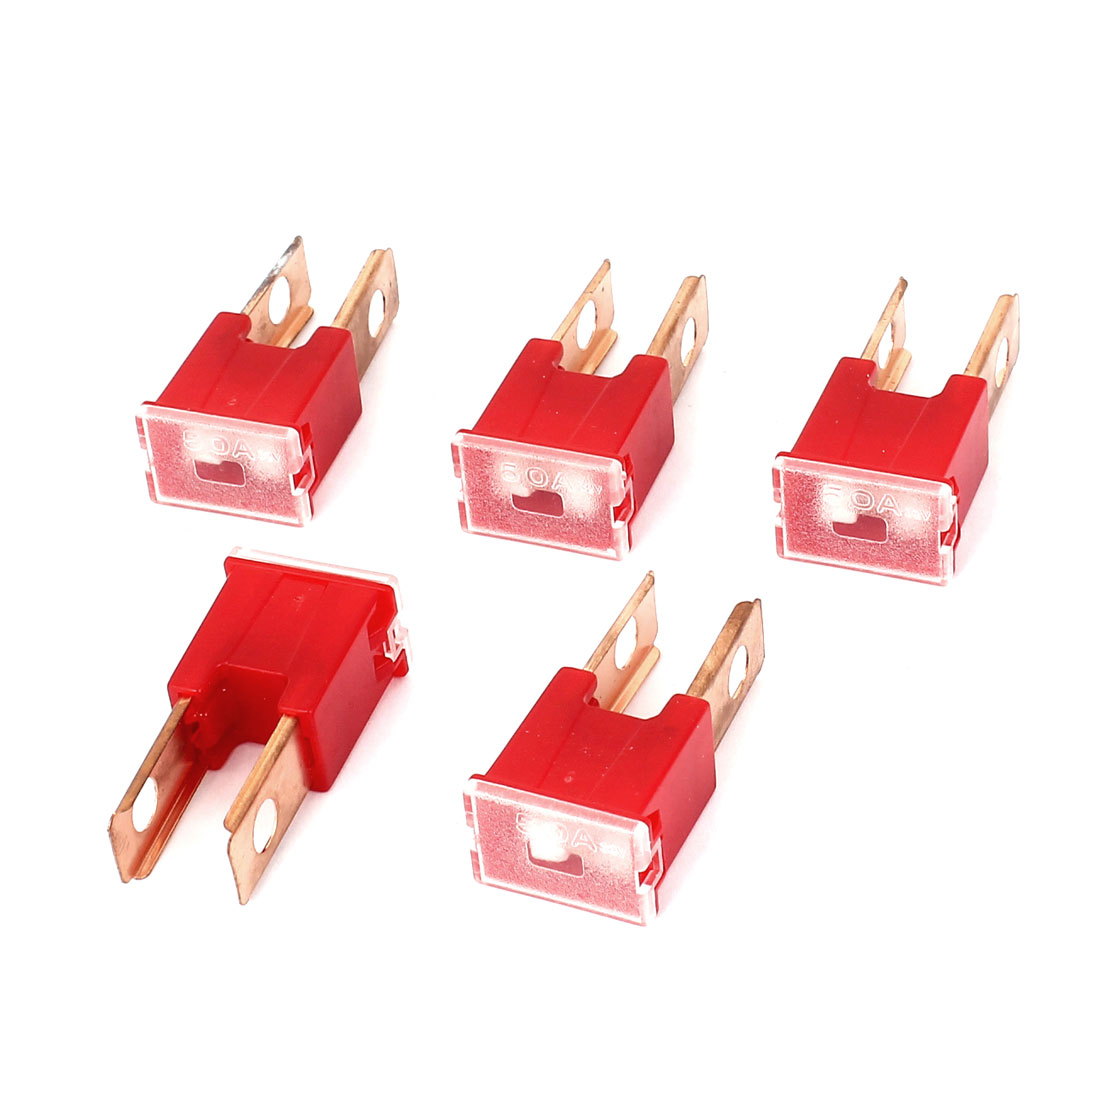 Car Auto 50A Amp 32V Pacific Type Male PAL Slow Blow Fuse Red 5 Pcs